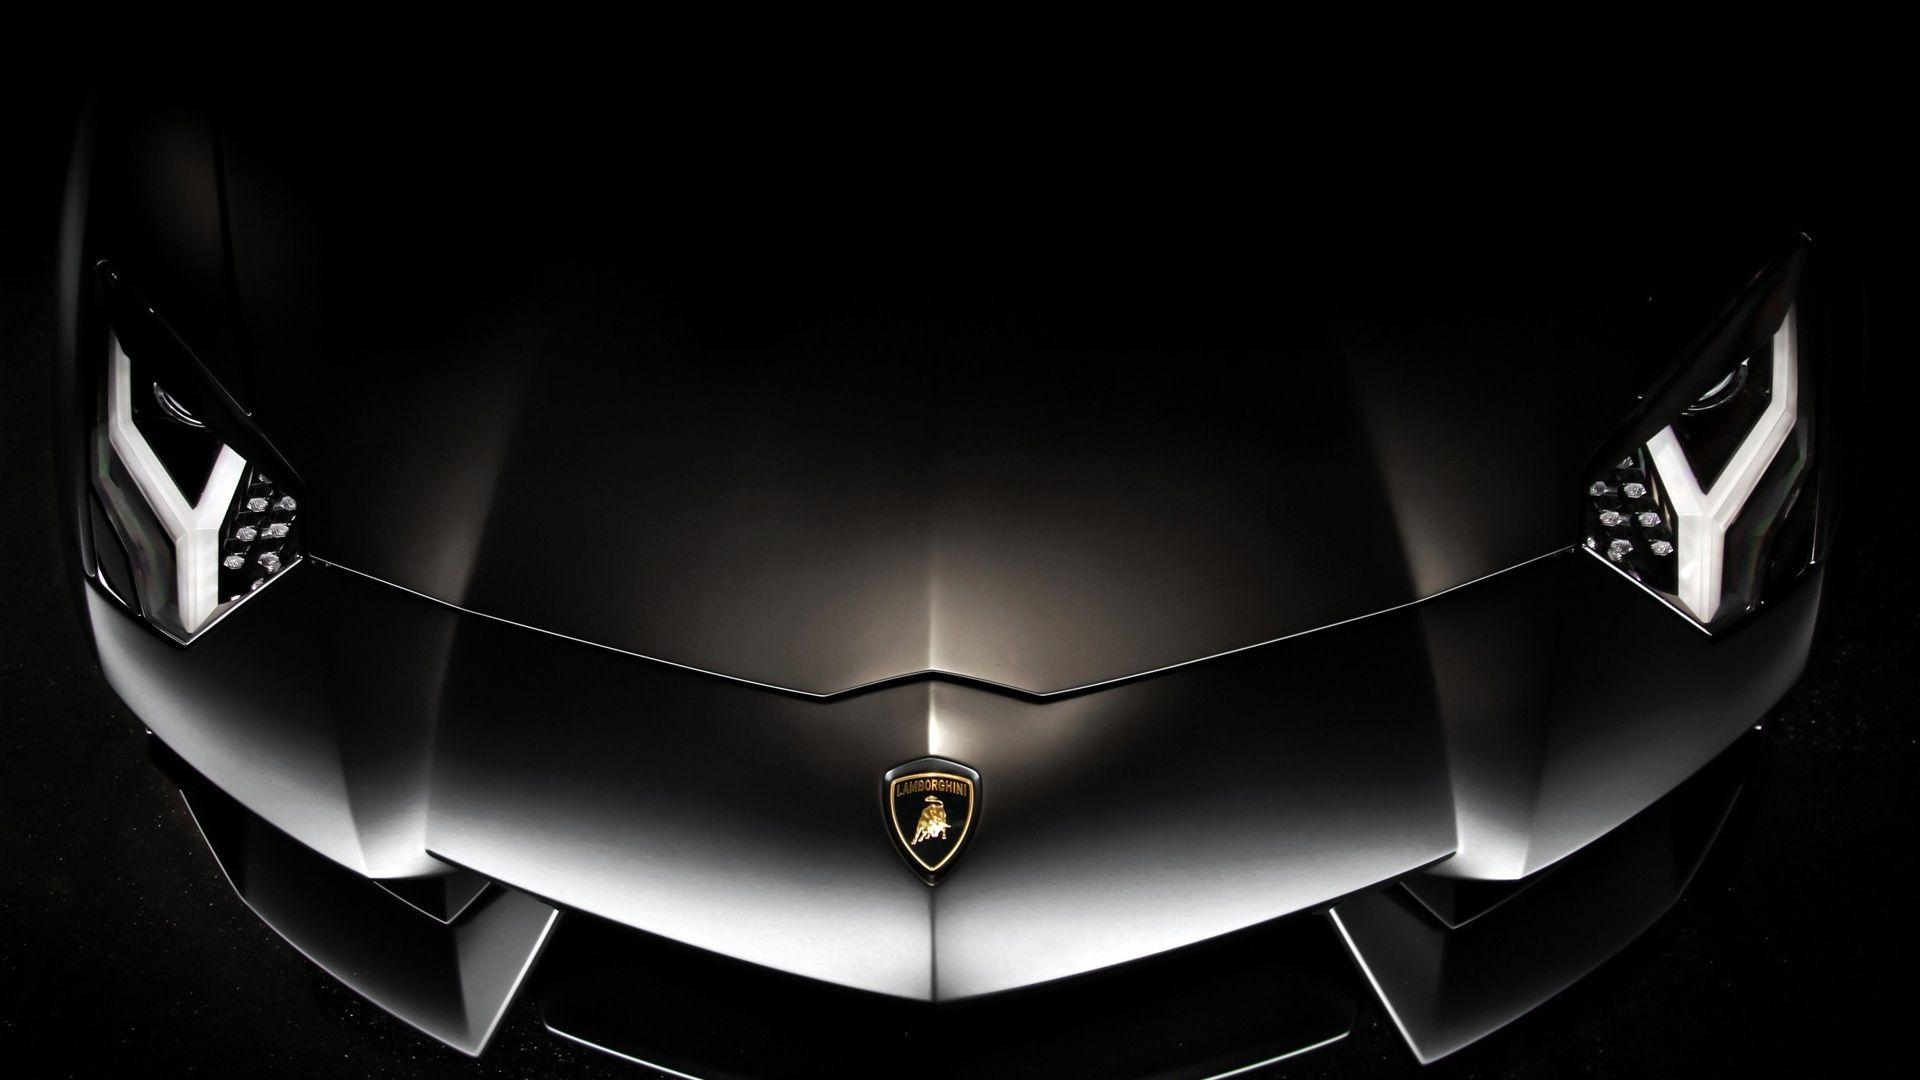 Lambo Logo Wallpapers Wallpaper Cave